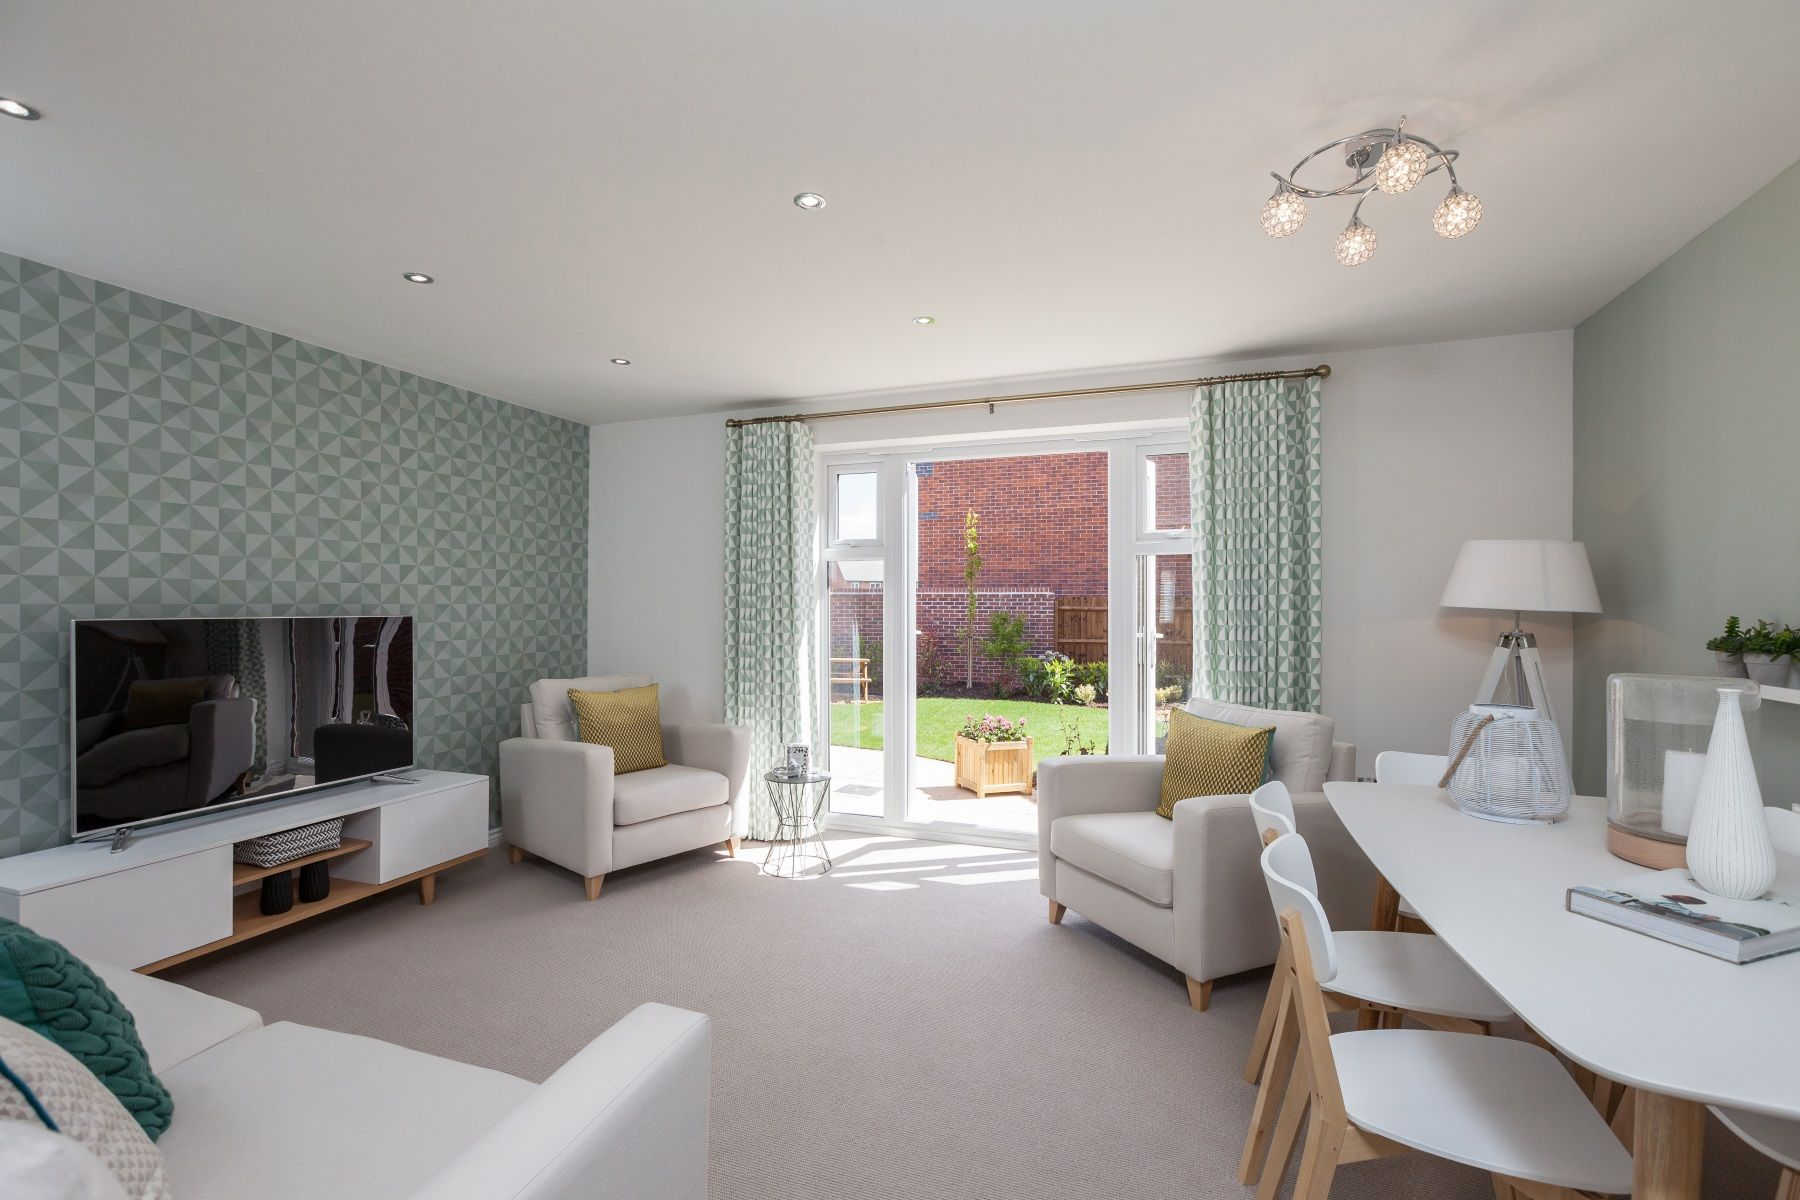 TW Exeter - Cranbrook - Flatford example living room